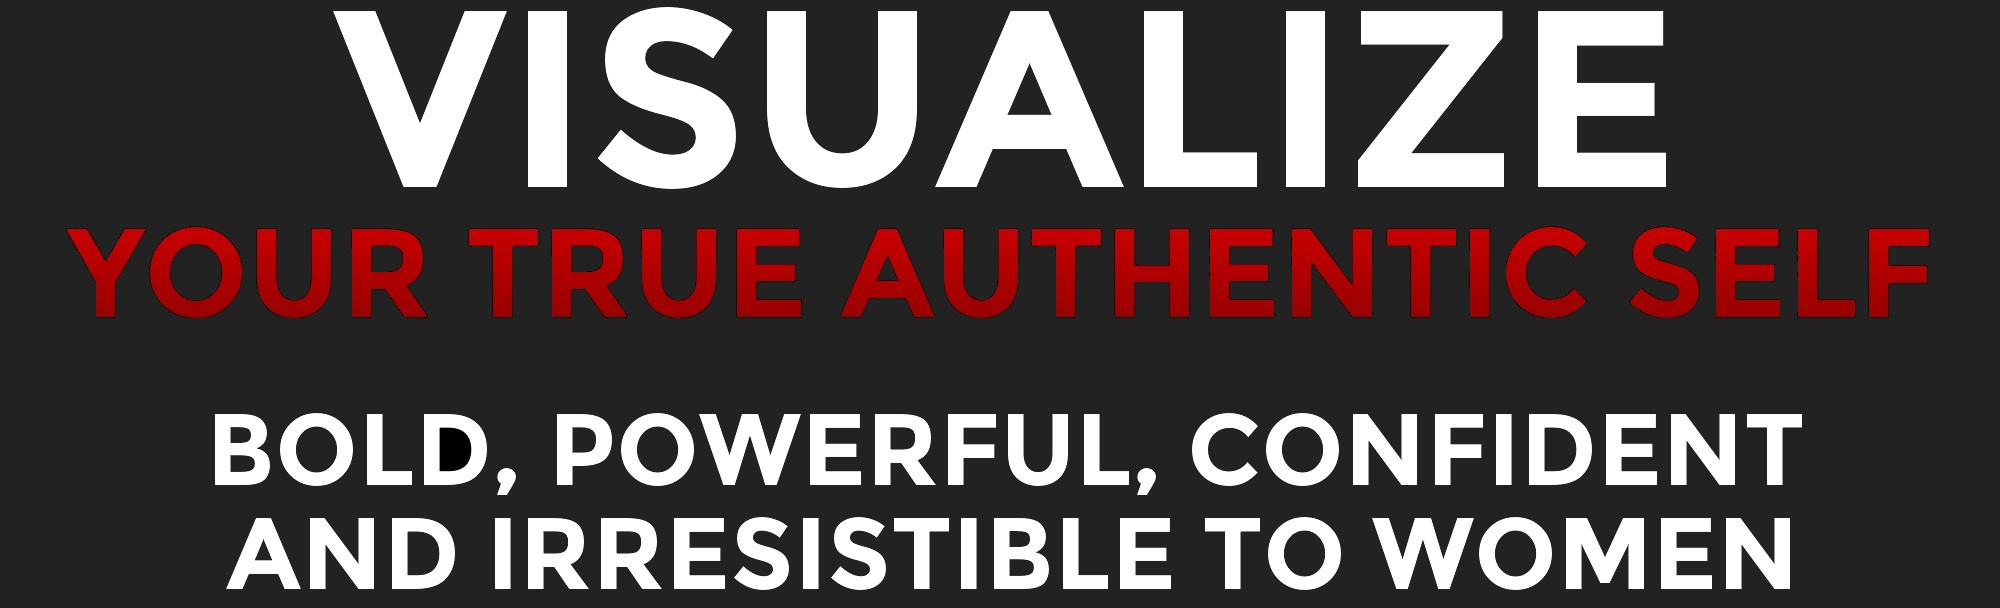 Visualize Your True Authentic Self